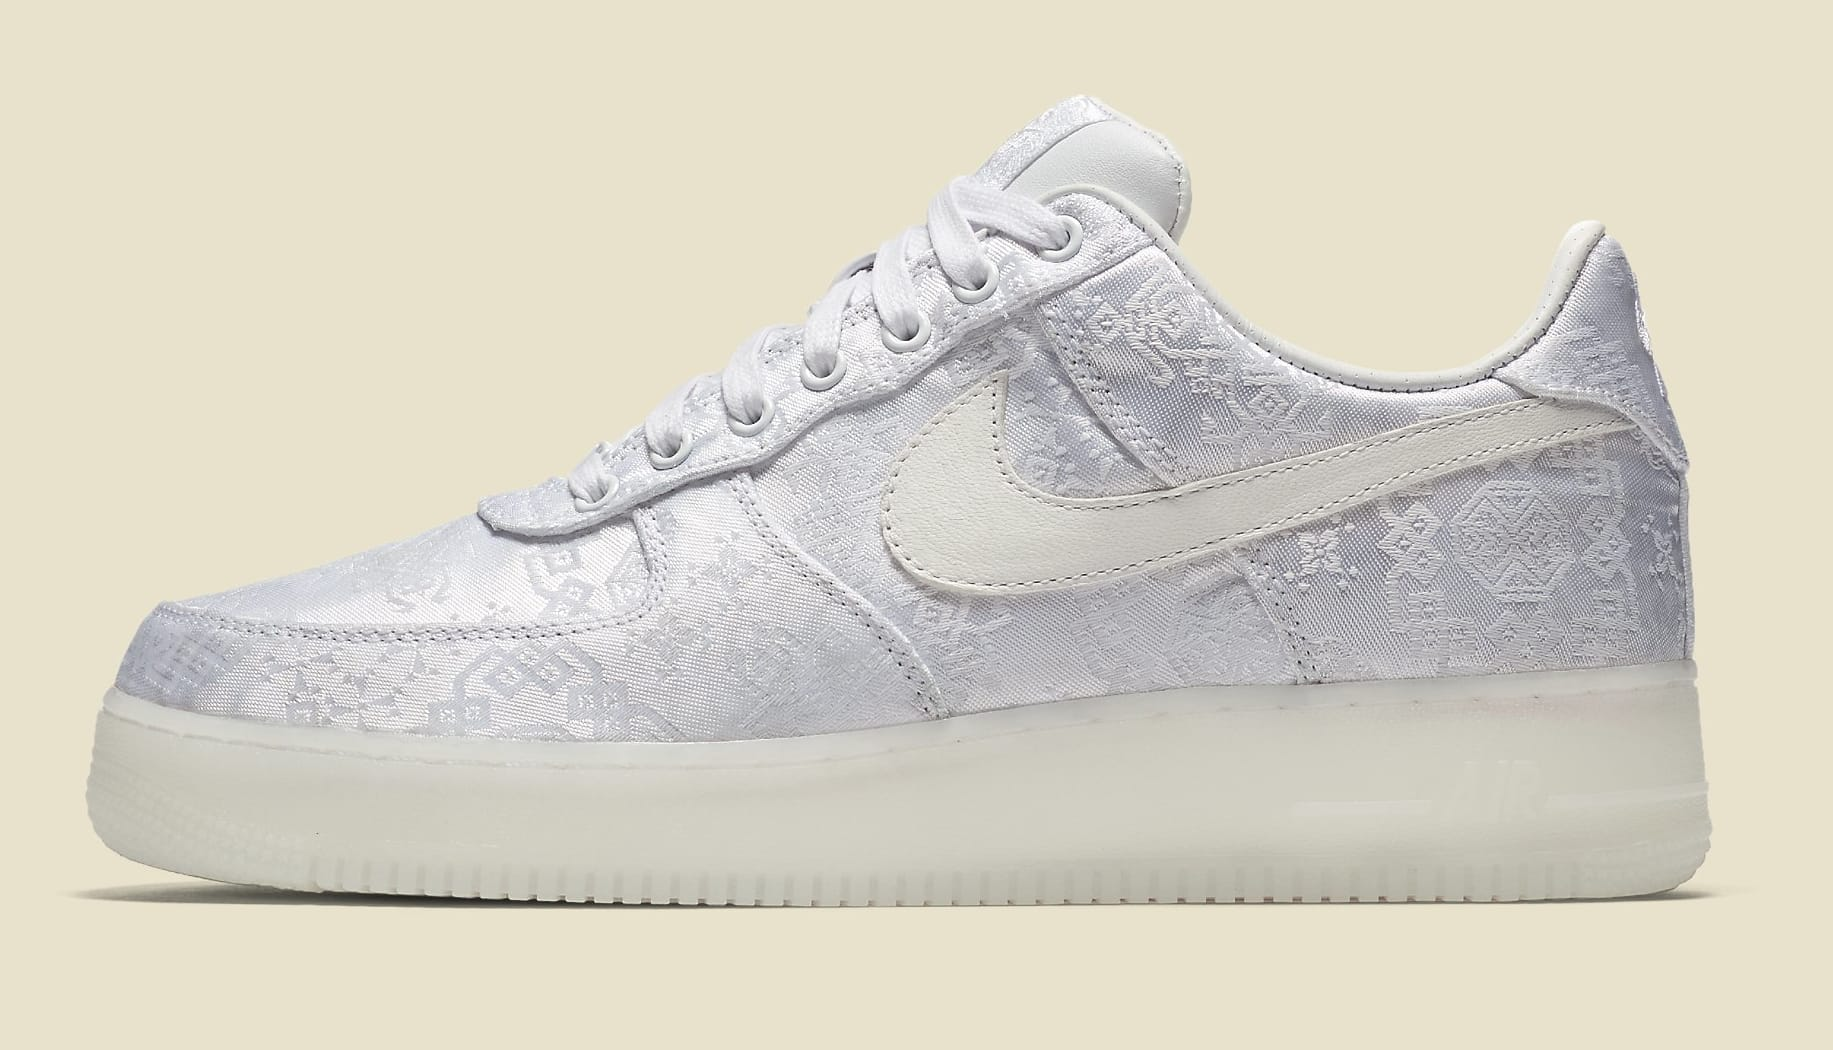 e0b45d3ea6872 CLOT x Nike Air Force 1 AO9286-100 Official Images | Sole Collector